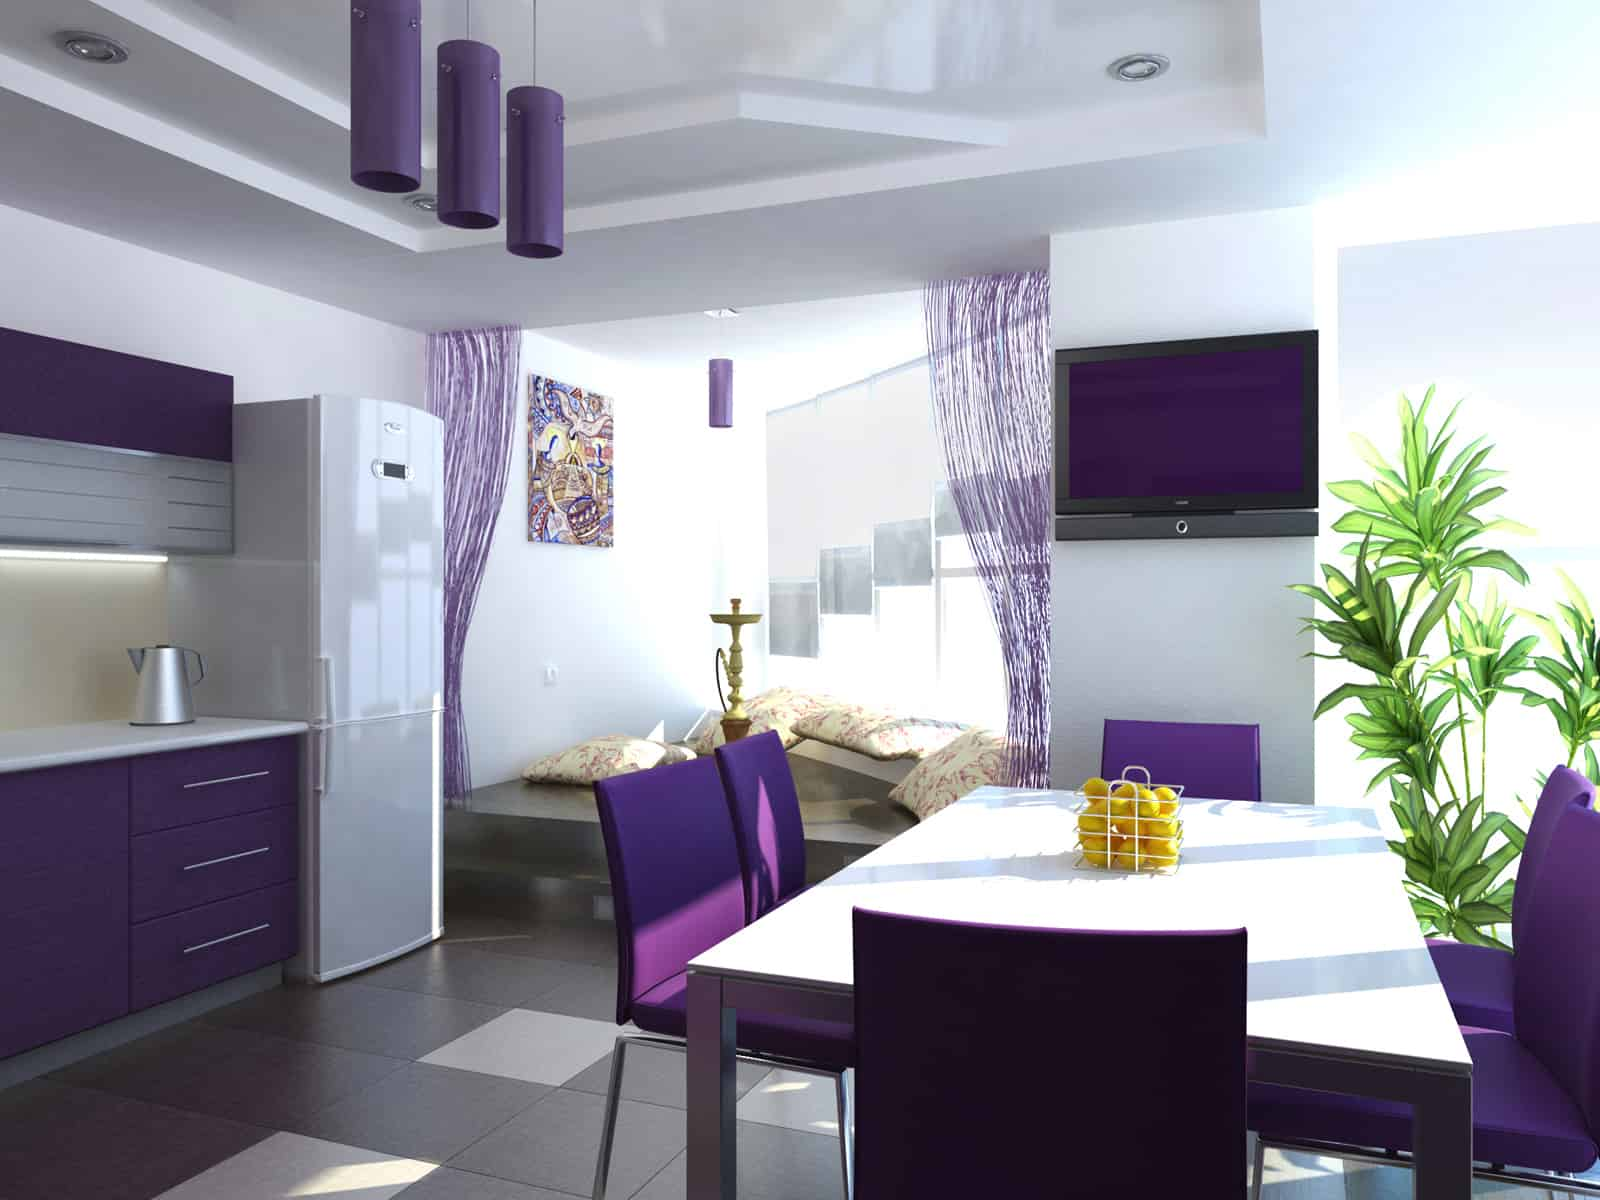 interior design kitchen trends interior design trends 2017 purple kitchen 268